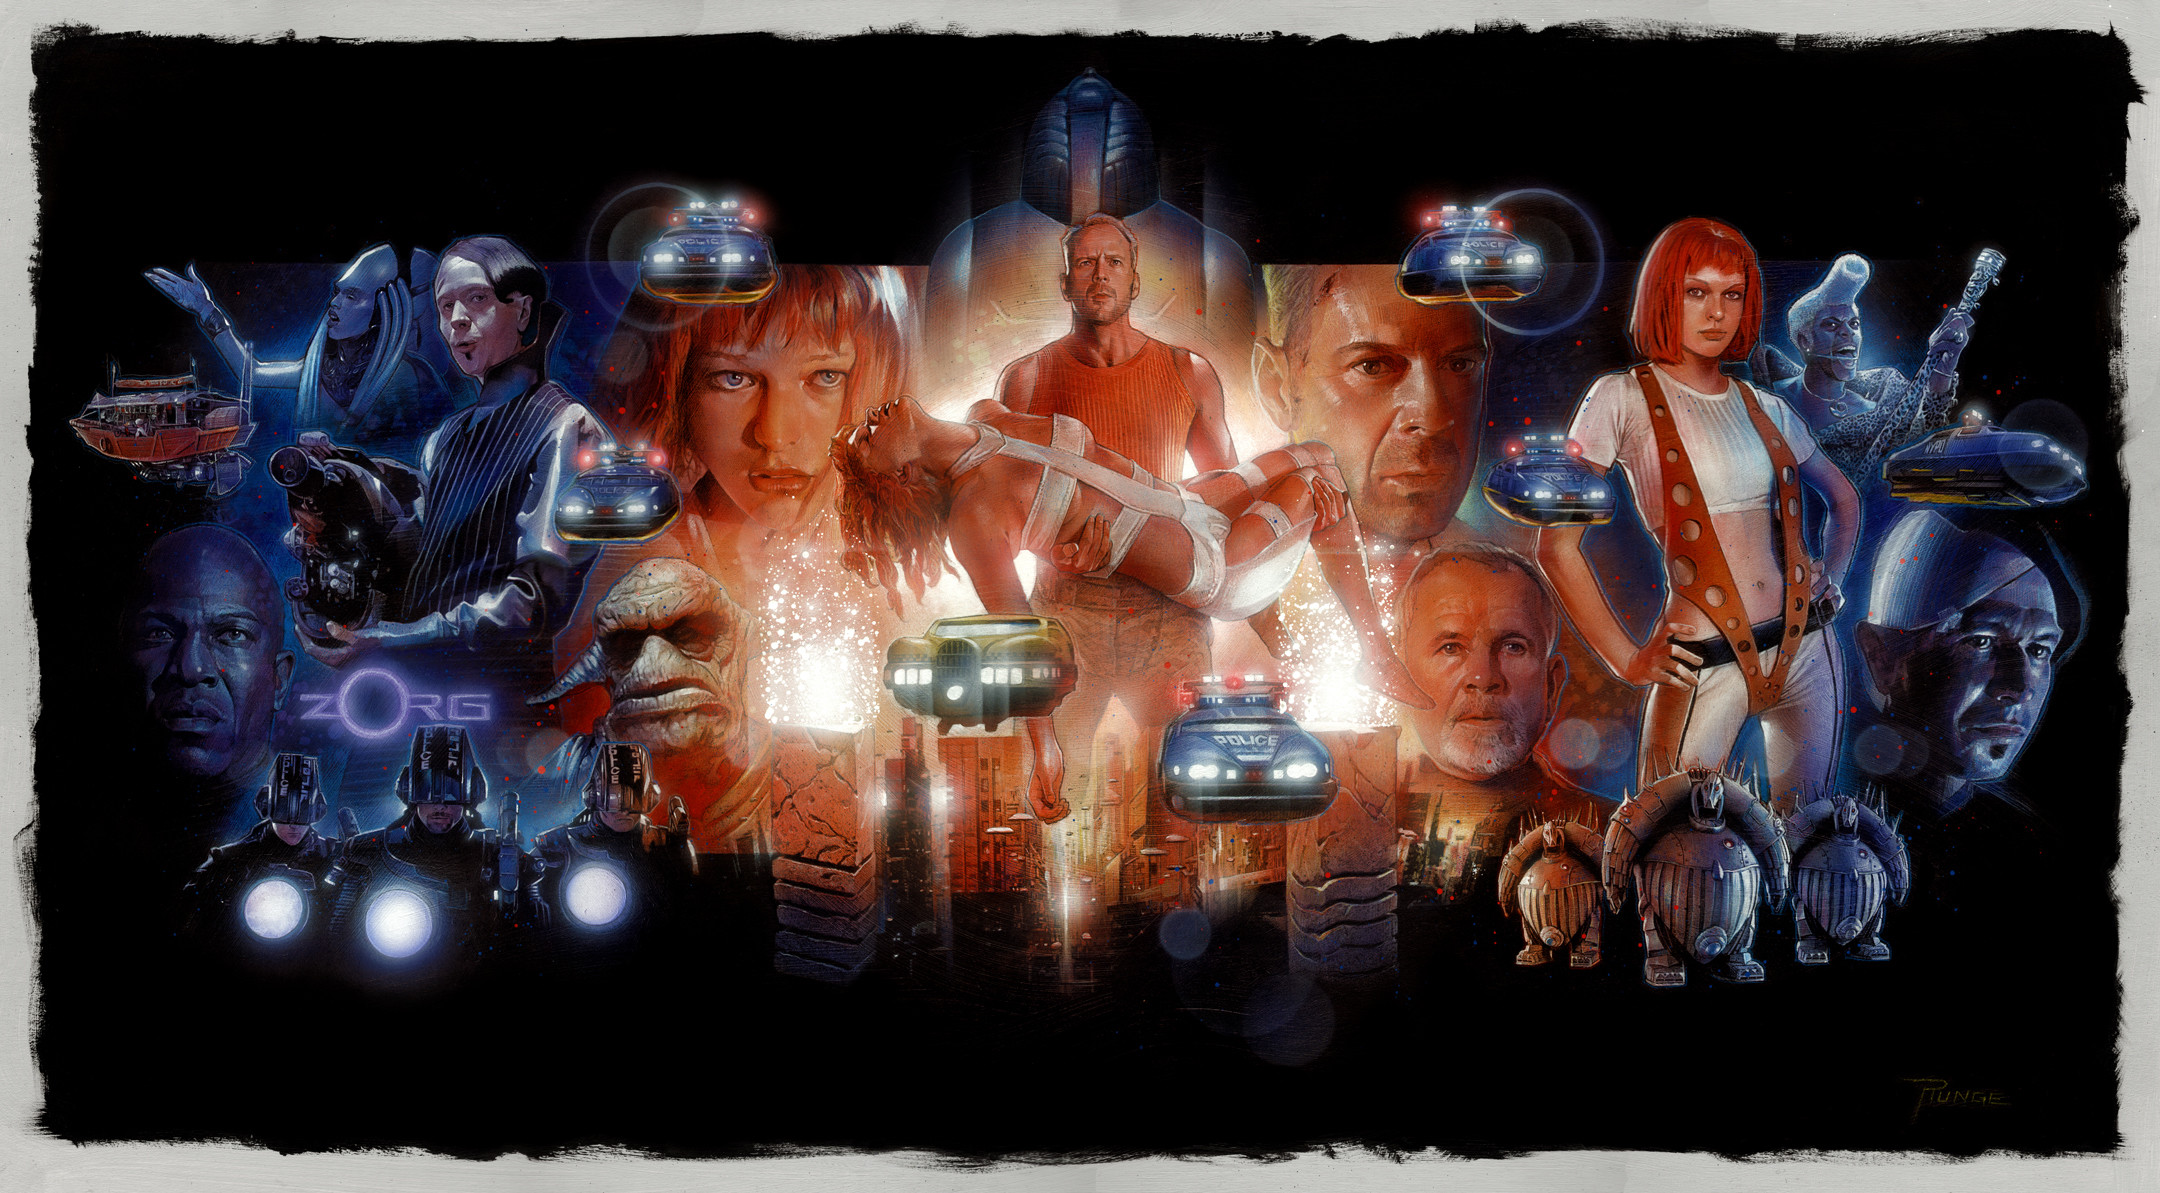 The Fifth Element Wallpaper 79 images 2160x1193